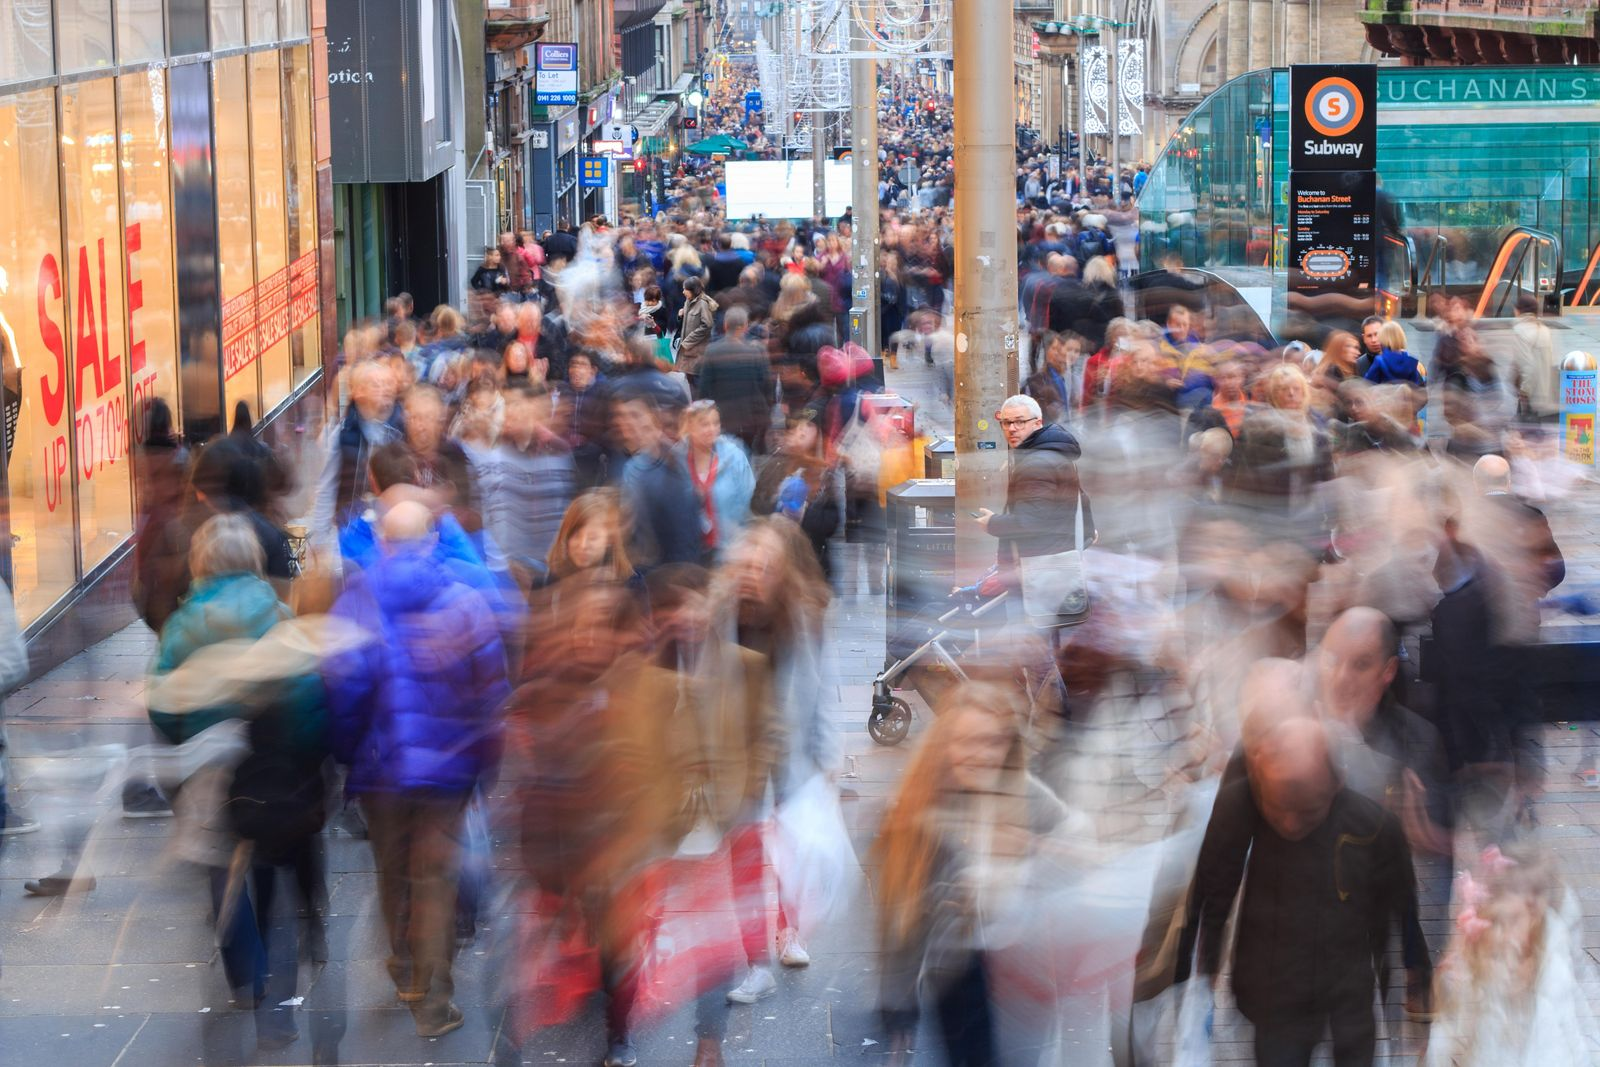 High street 'fast fashion' is taking its toll on the planet as well as workers rights. ...